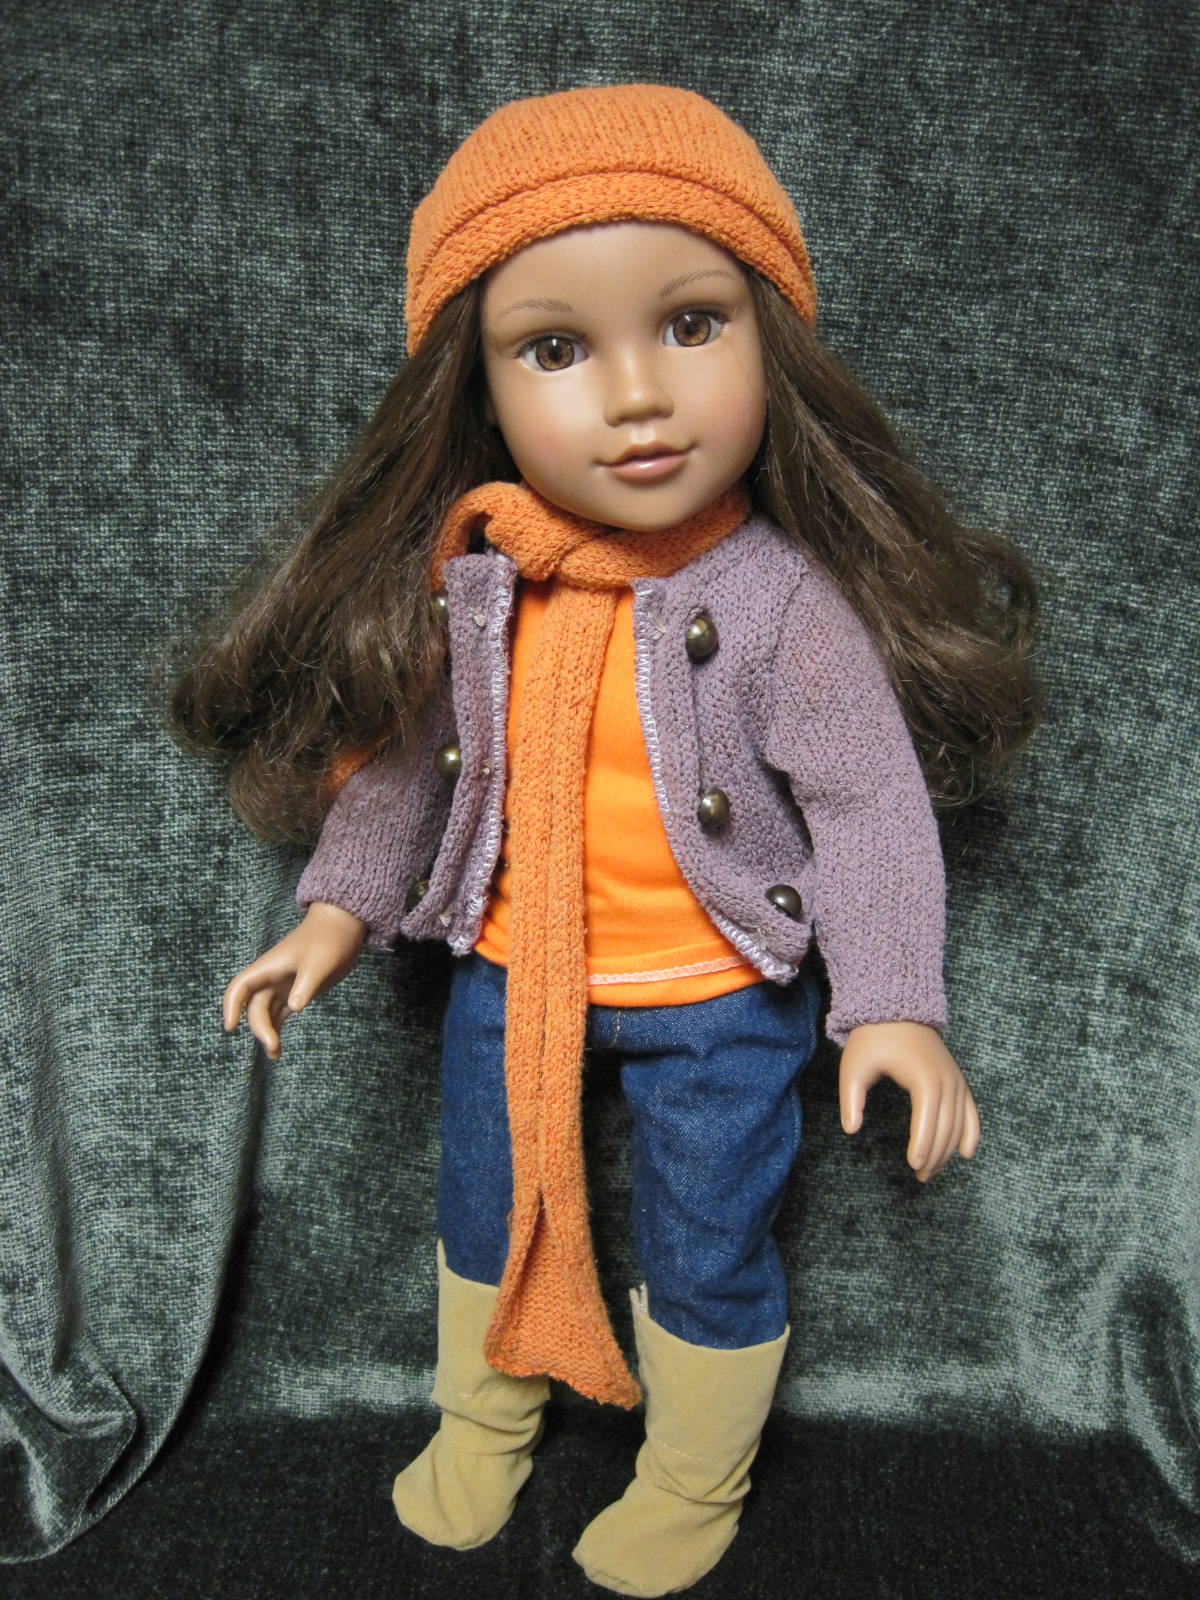 Never Grow Up: A Mom's Guide To Dolls And More: Journey